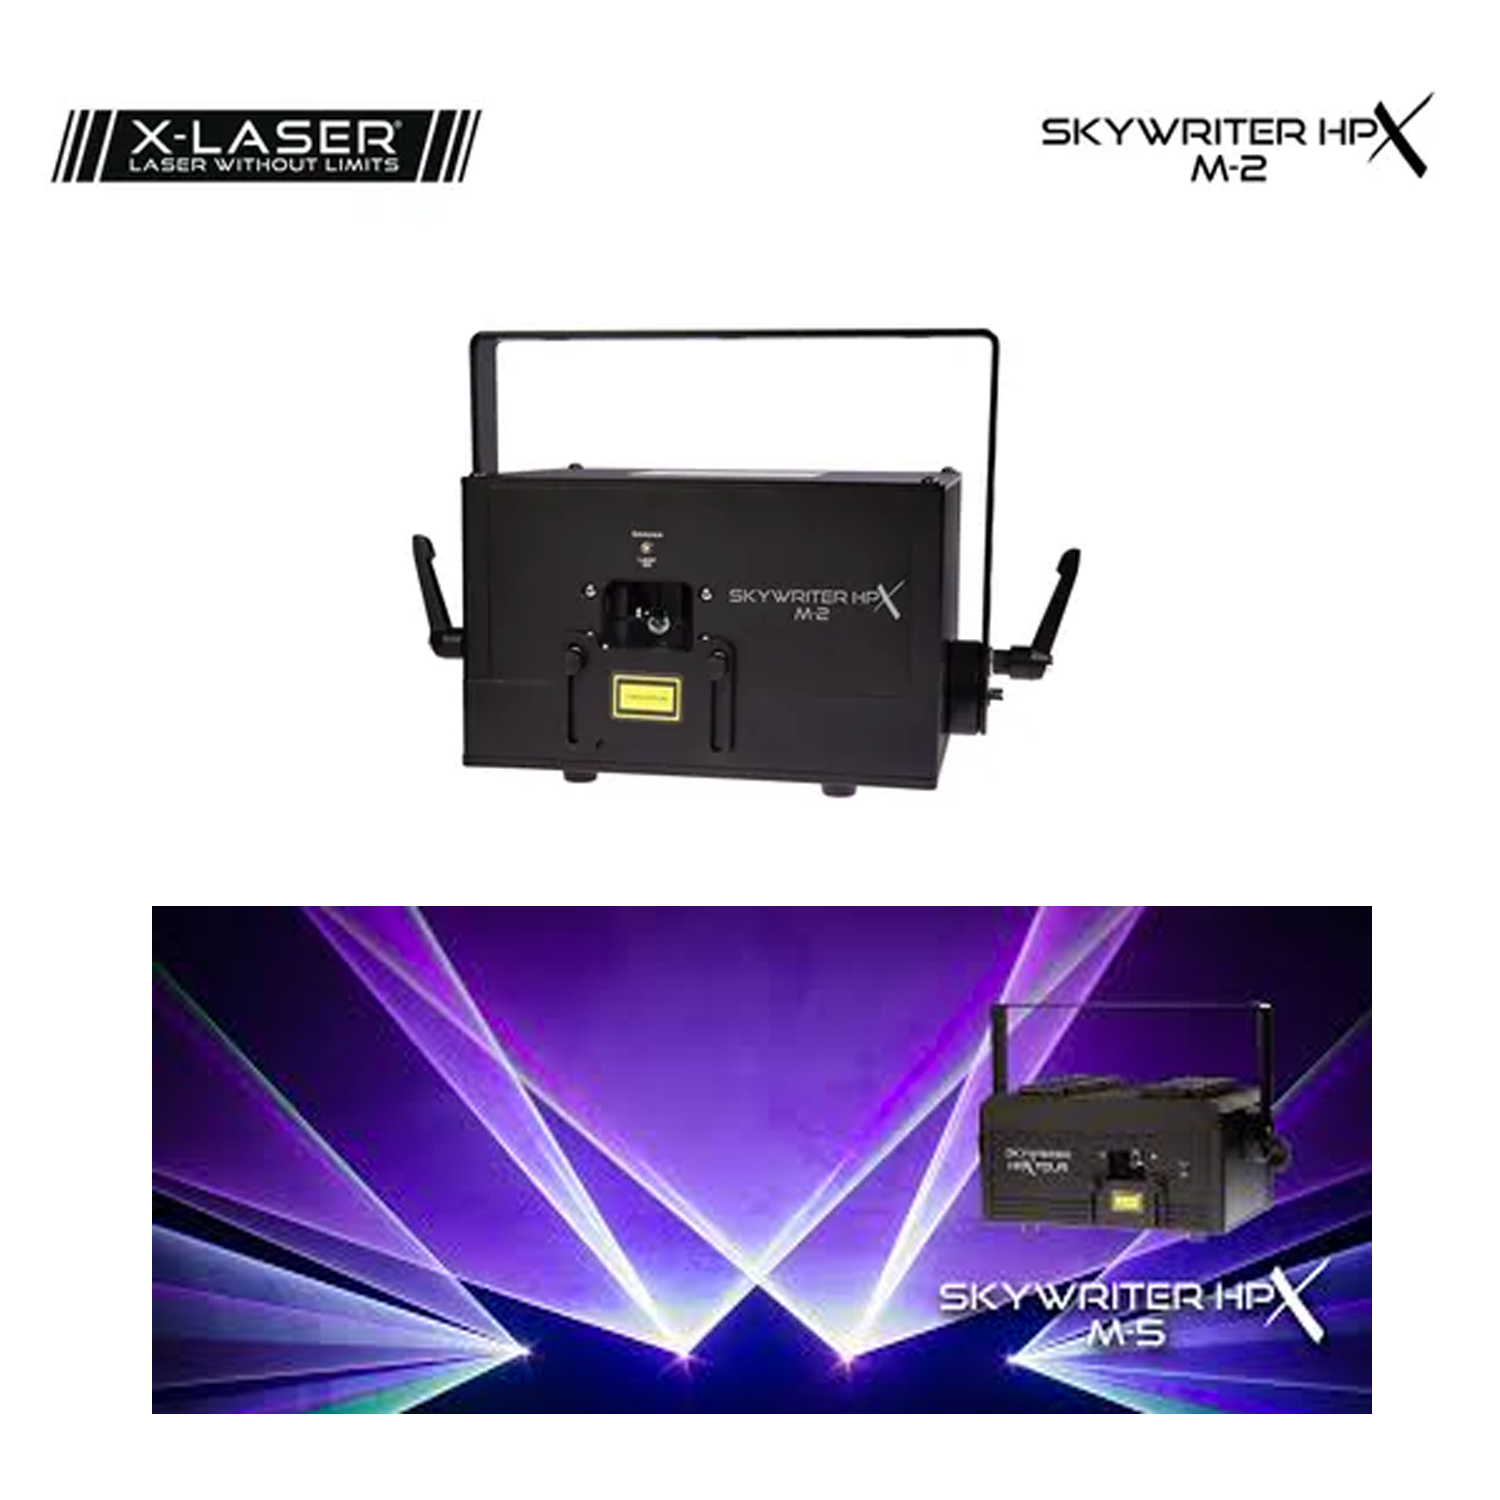 (1) X-Laser Skywriter HPX M-2 - 2W Mercury Laser, E-Stop and Temporary Variance Kit